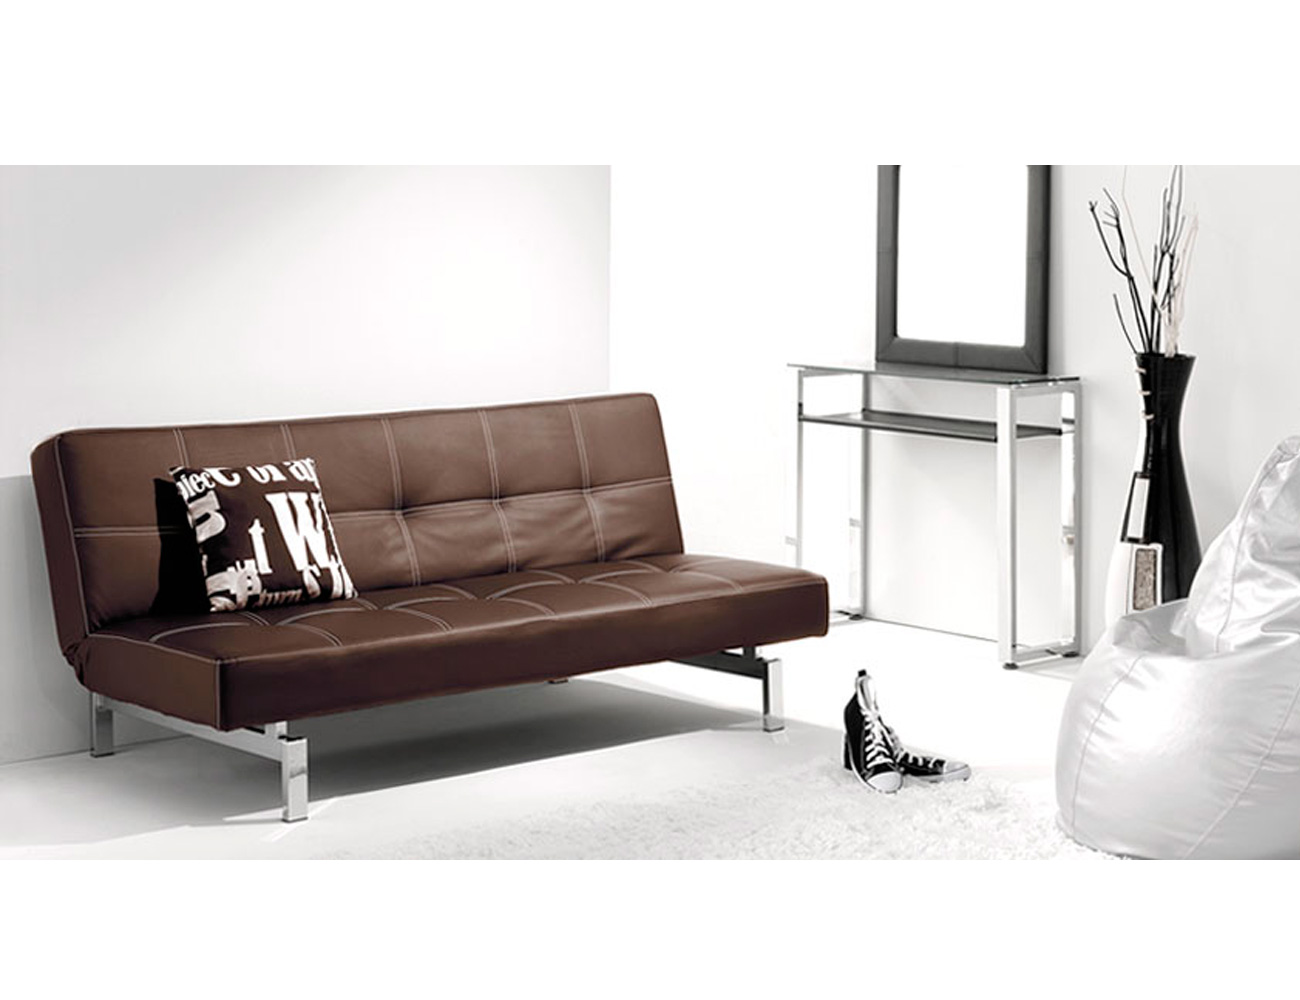 Sofa cama click clak chocolate